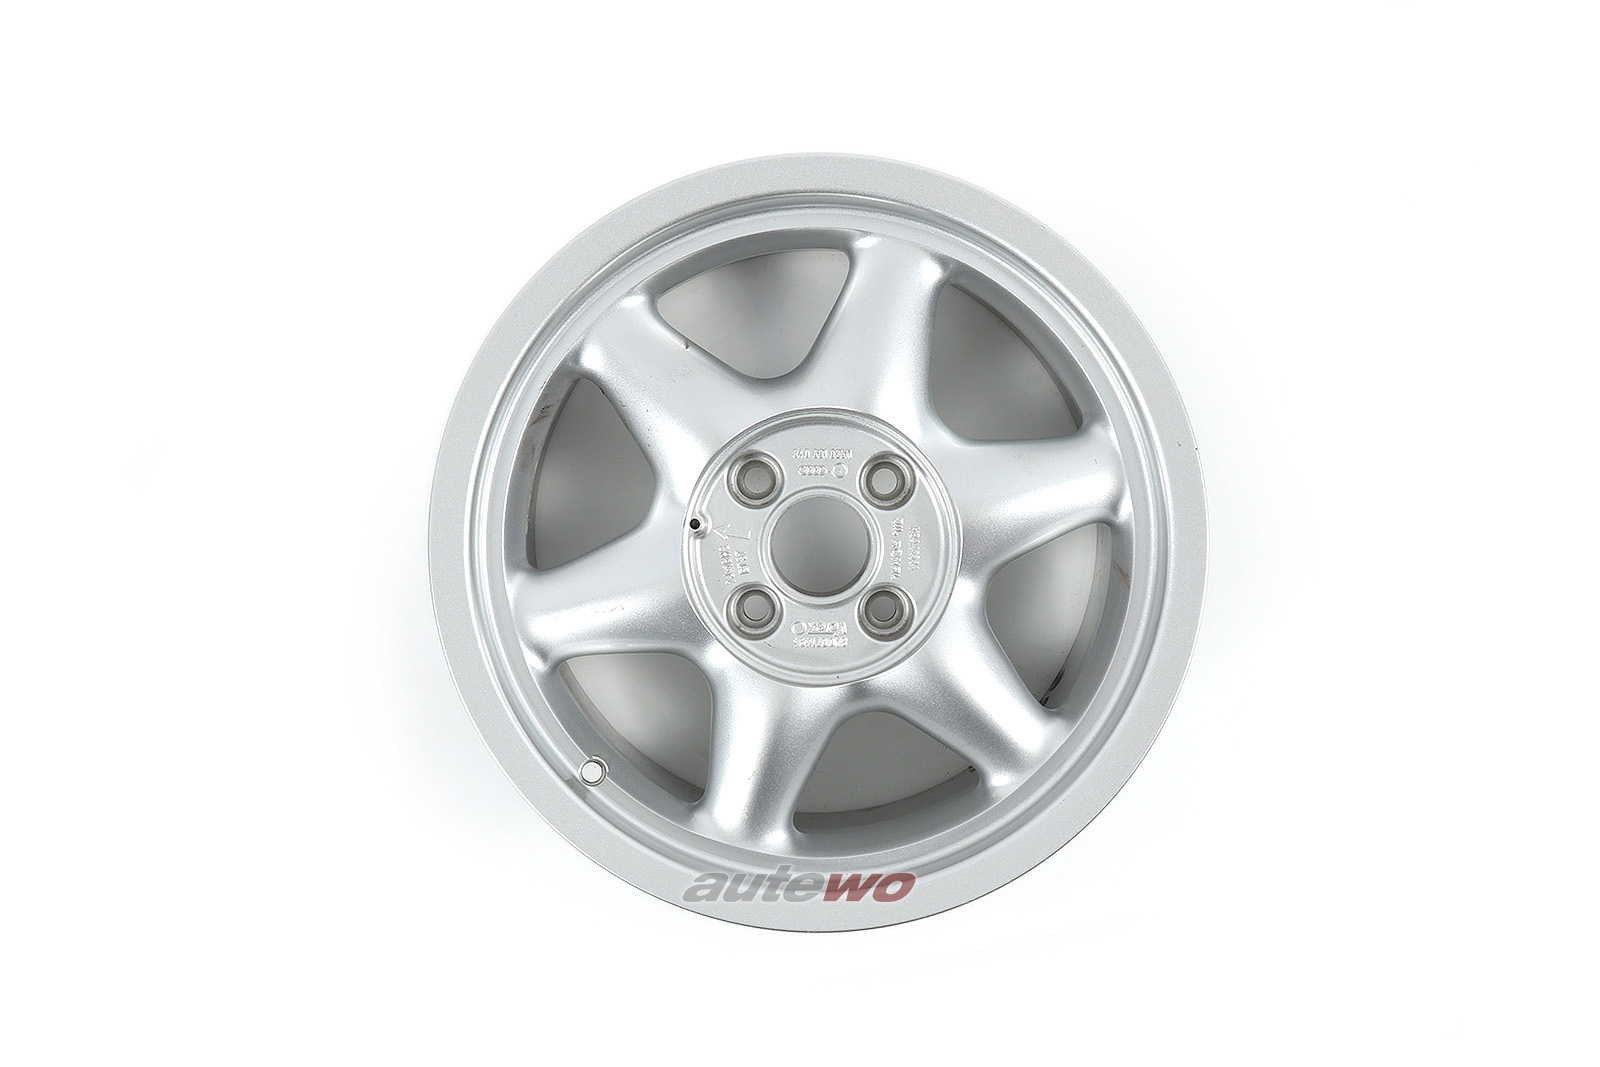 8A0601025N Audi 80 B4/Coupe/Cabrio Competition Alufelge 7x16 ET37 4x108